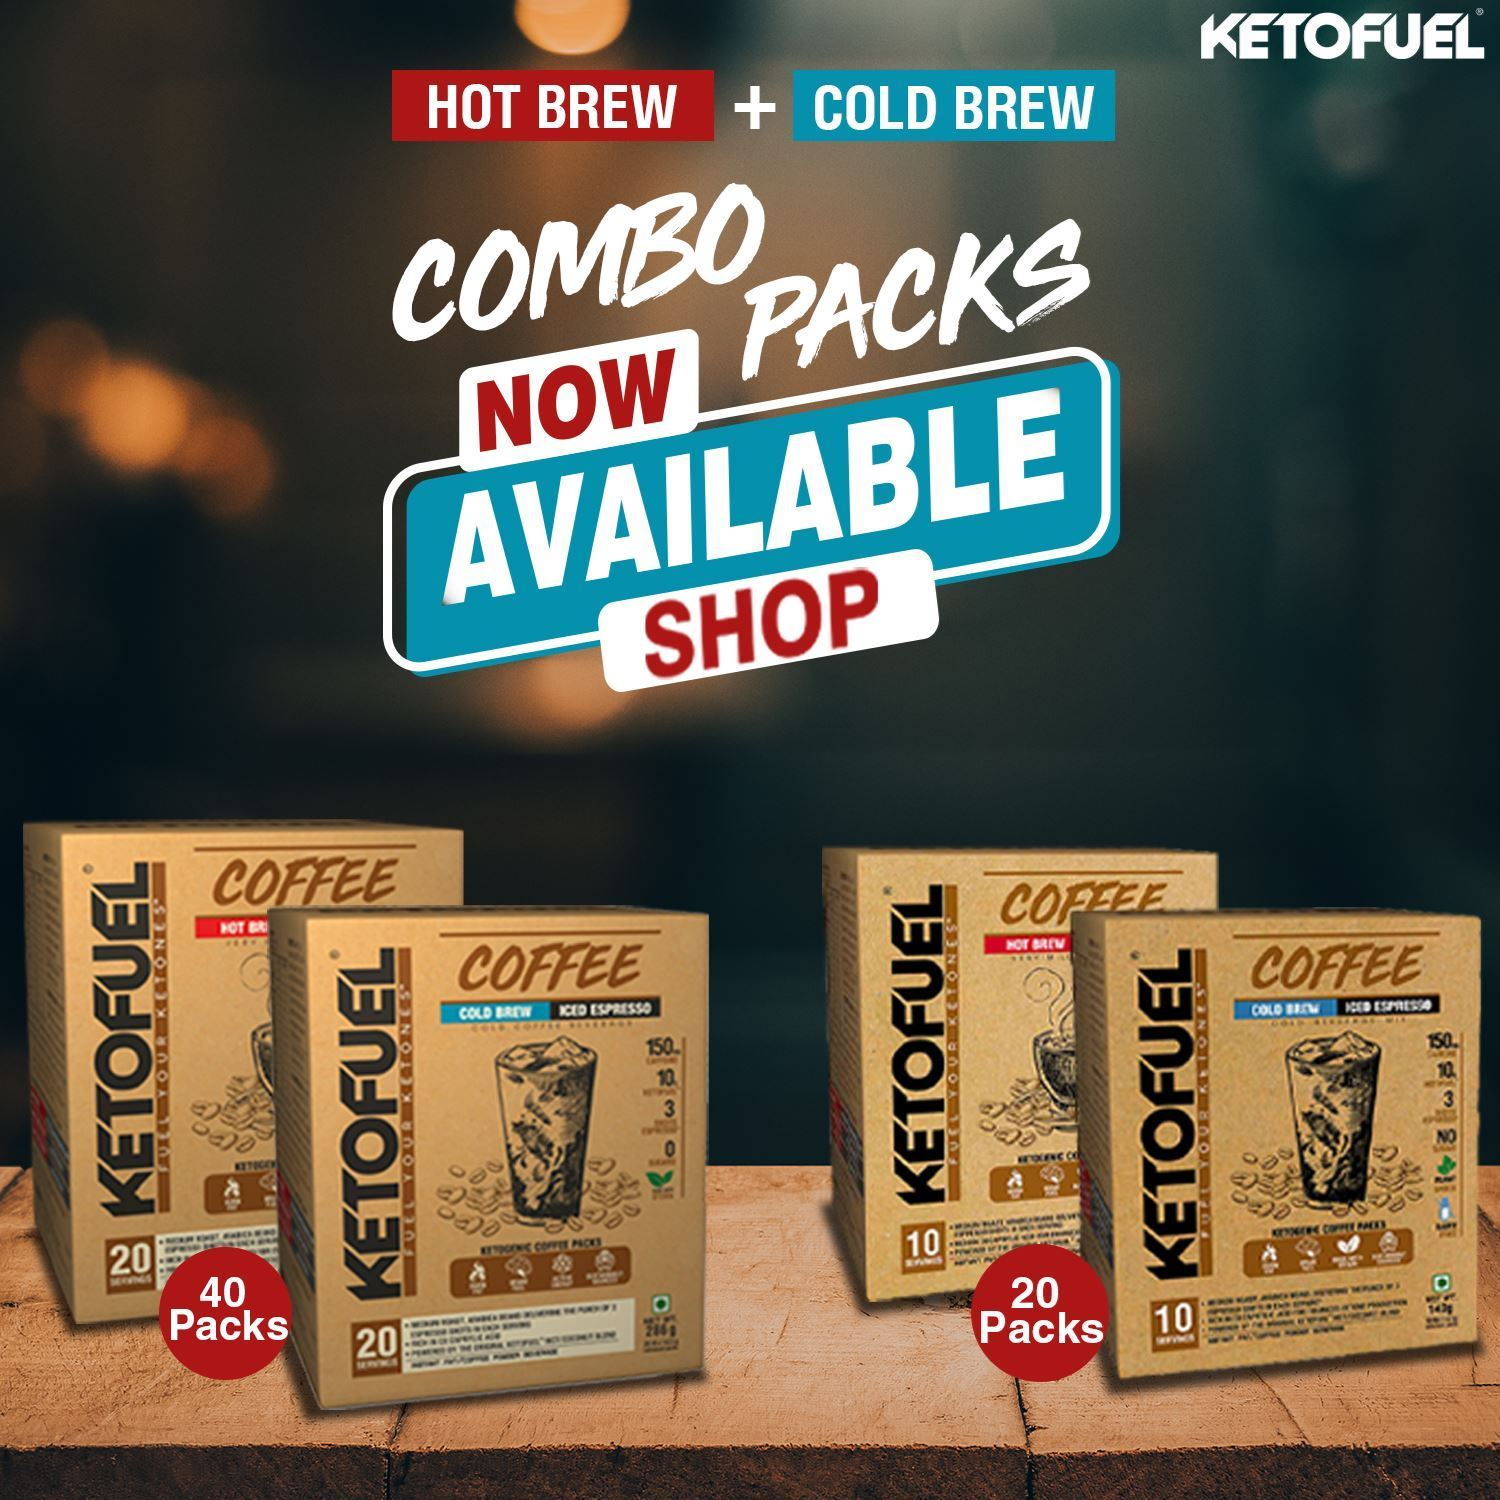 Picture of Ketofuel® MCT Keto Coffee Hot Brew/Cold Brew Combo Pack (10+10 Packs) 20 Servings